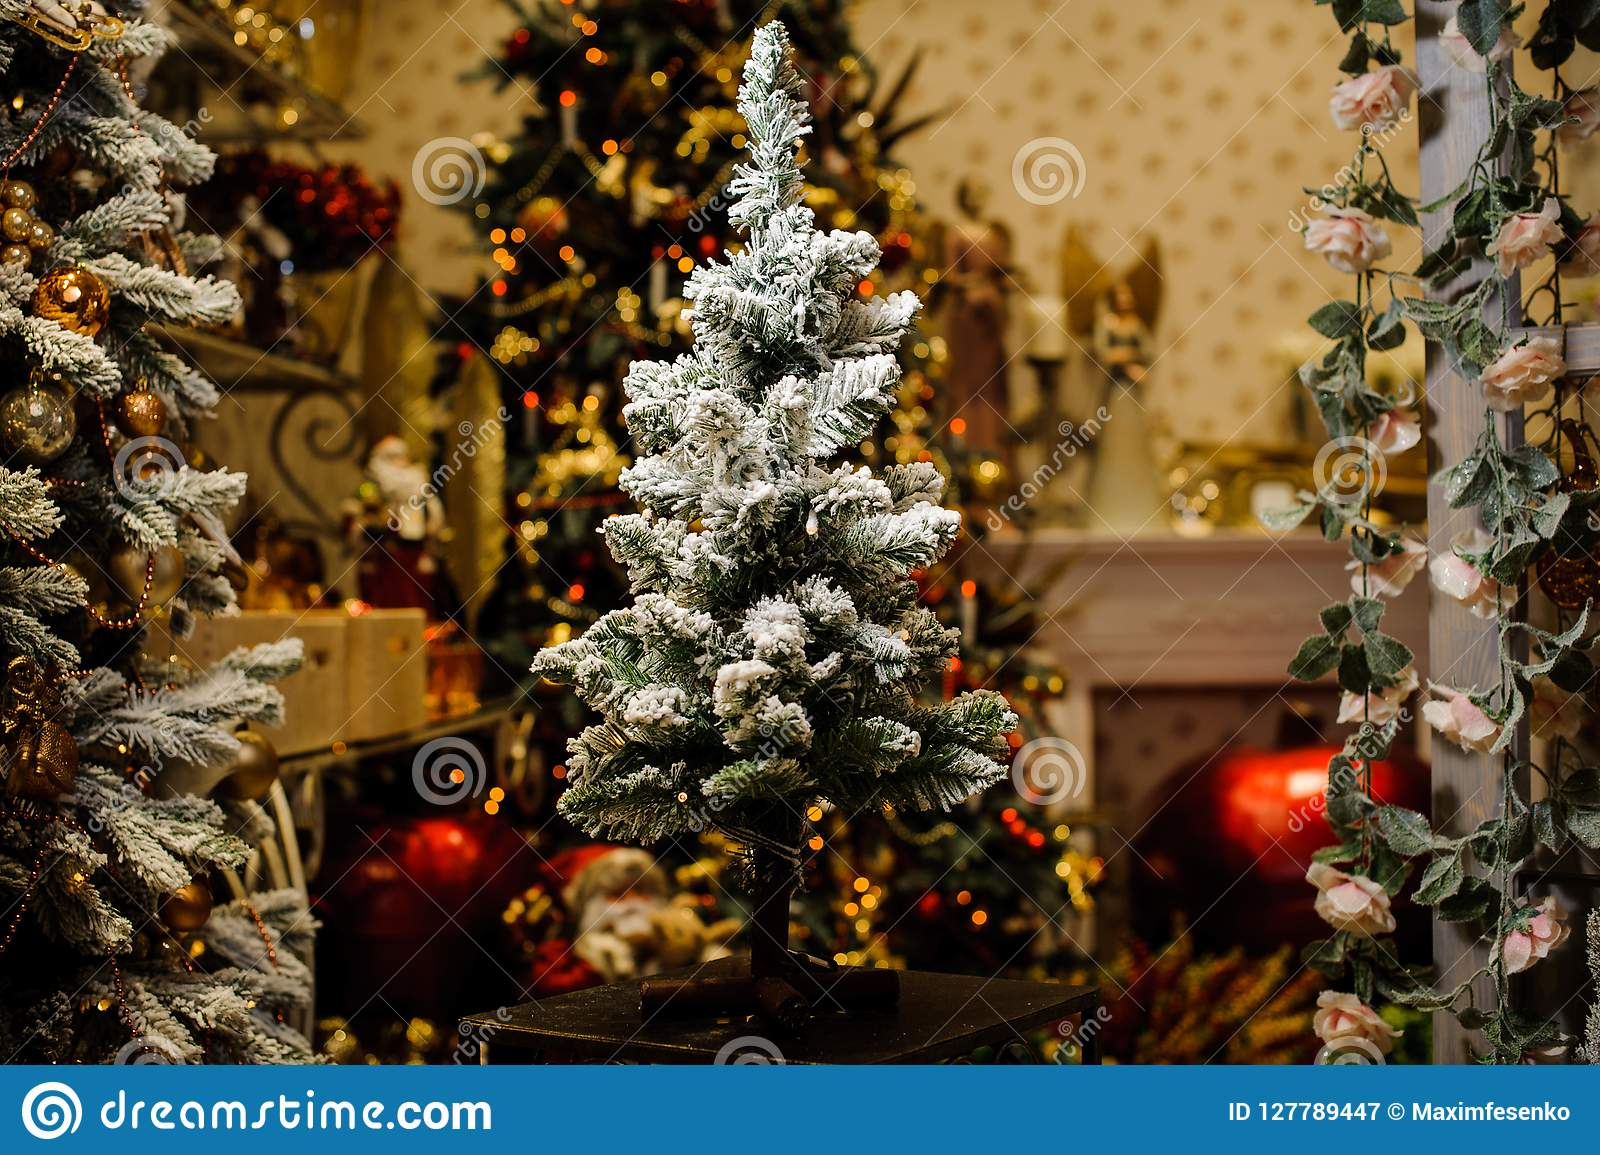 Little Artificial Christmas Tree Decorated With Artificial